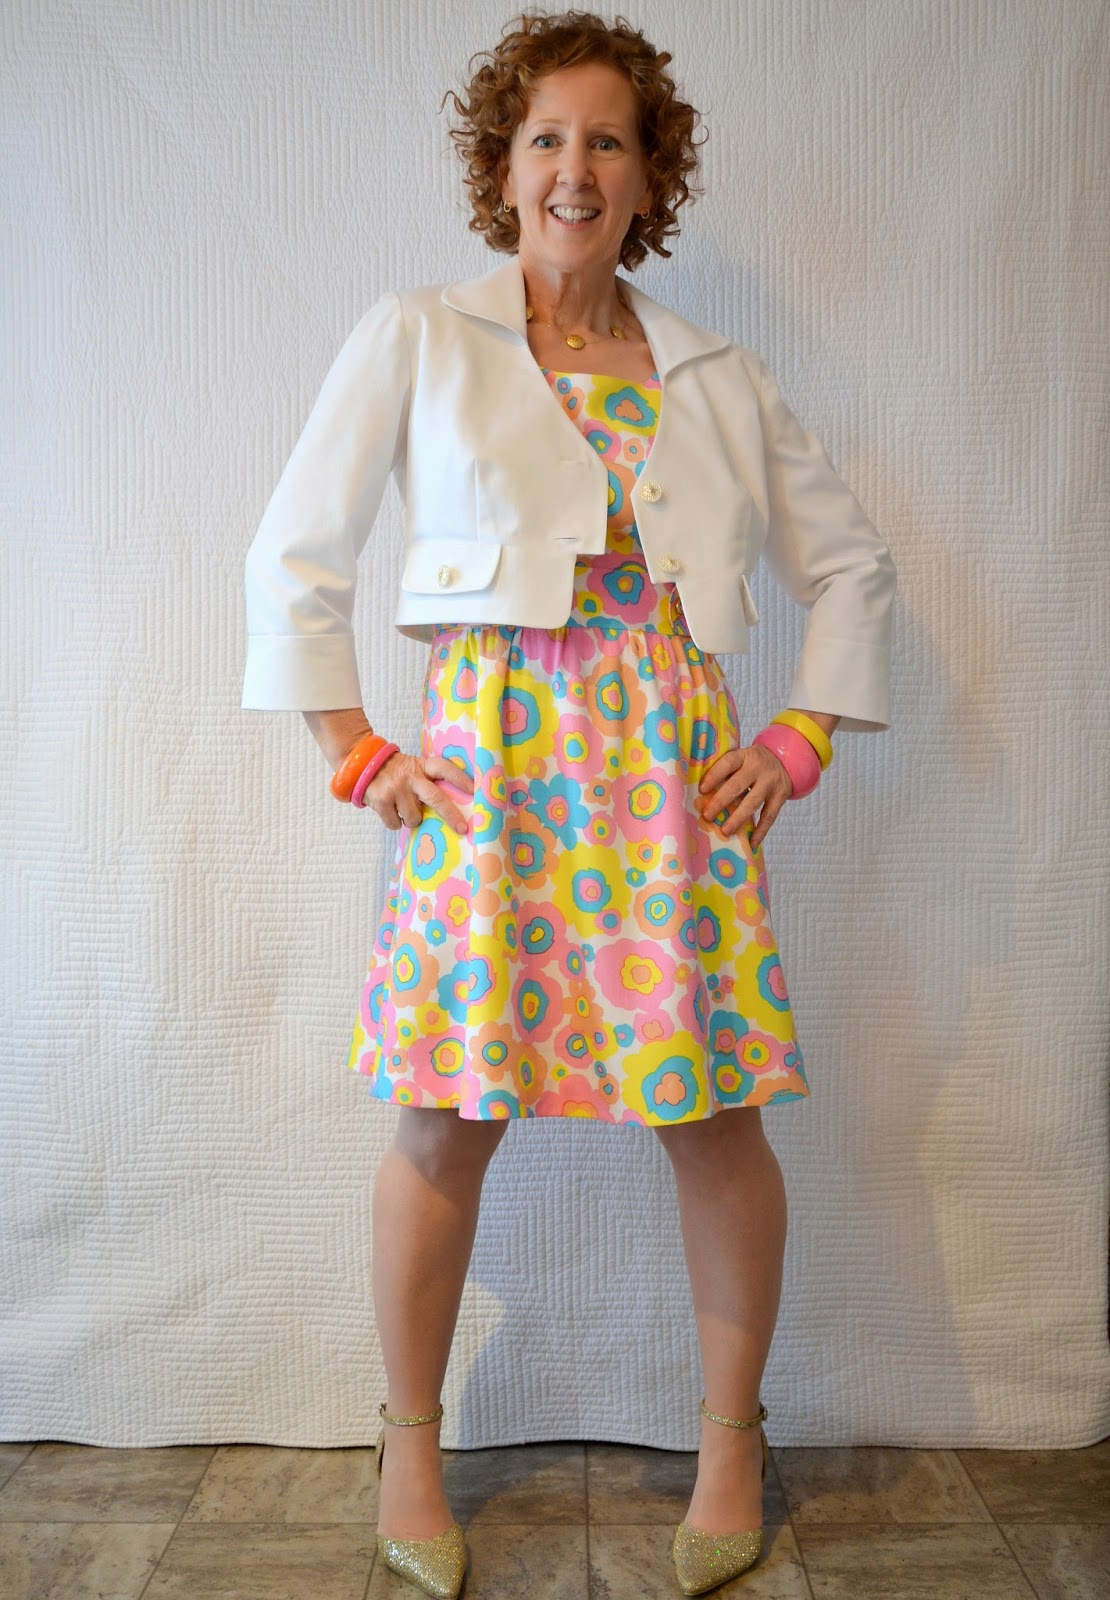 A Colourful Canvas, Dressing Your Truth, DYT Type One, Cynthia Rowley 1873, New Look 6799, Simplicity 2256